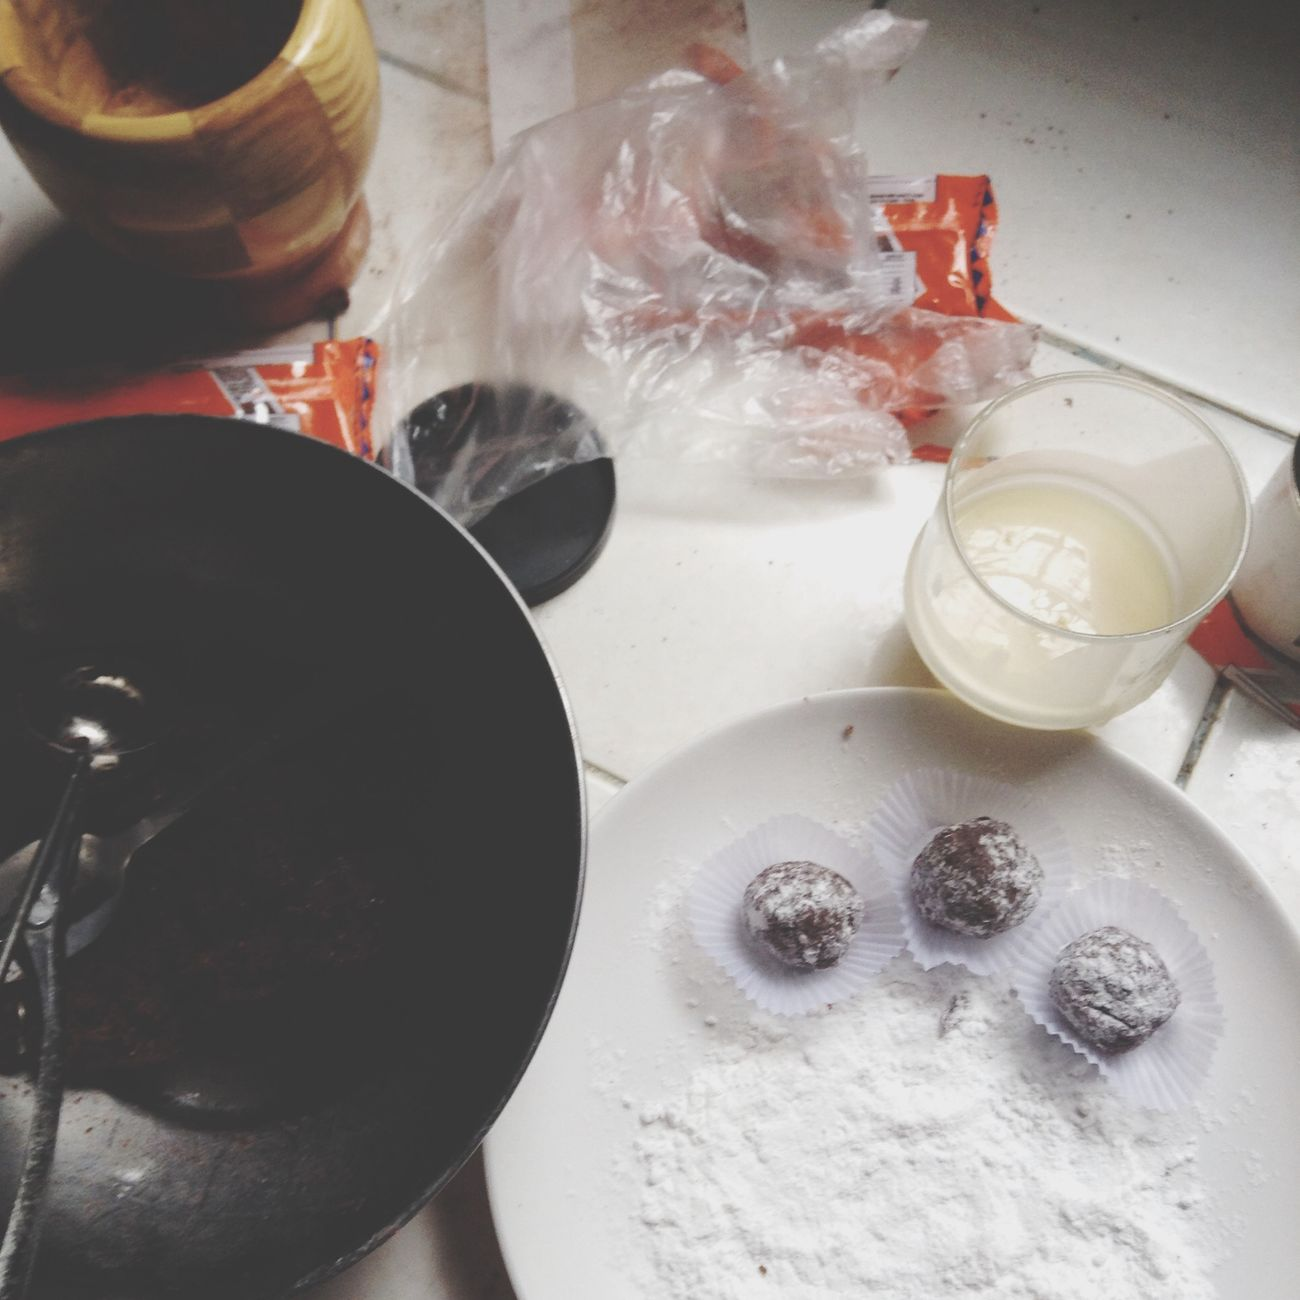 Making chocoballssss :)